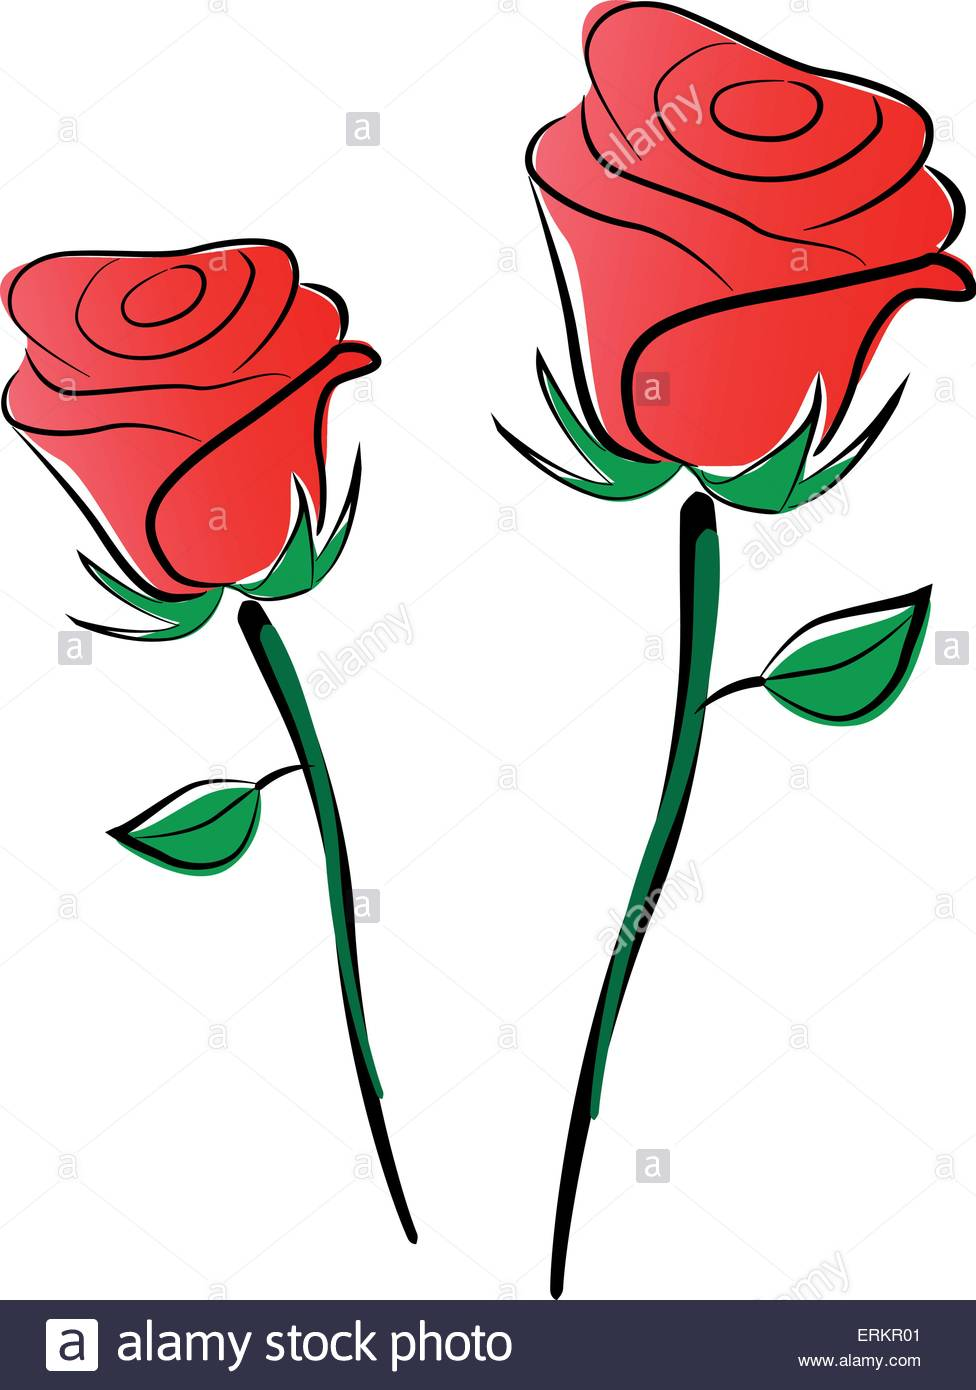 976x1390 Vector Illustration Of Roses Drawing On White Background Stock